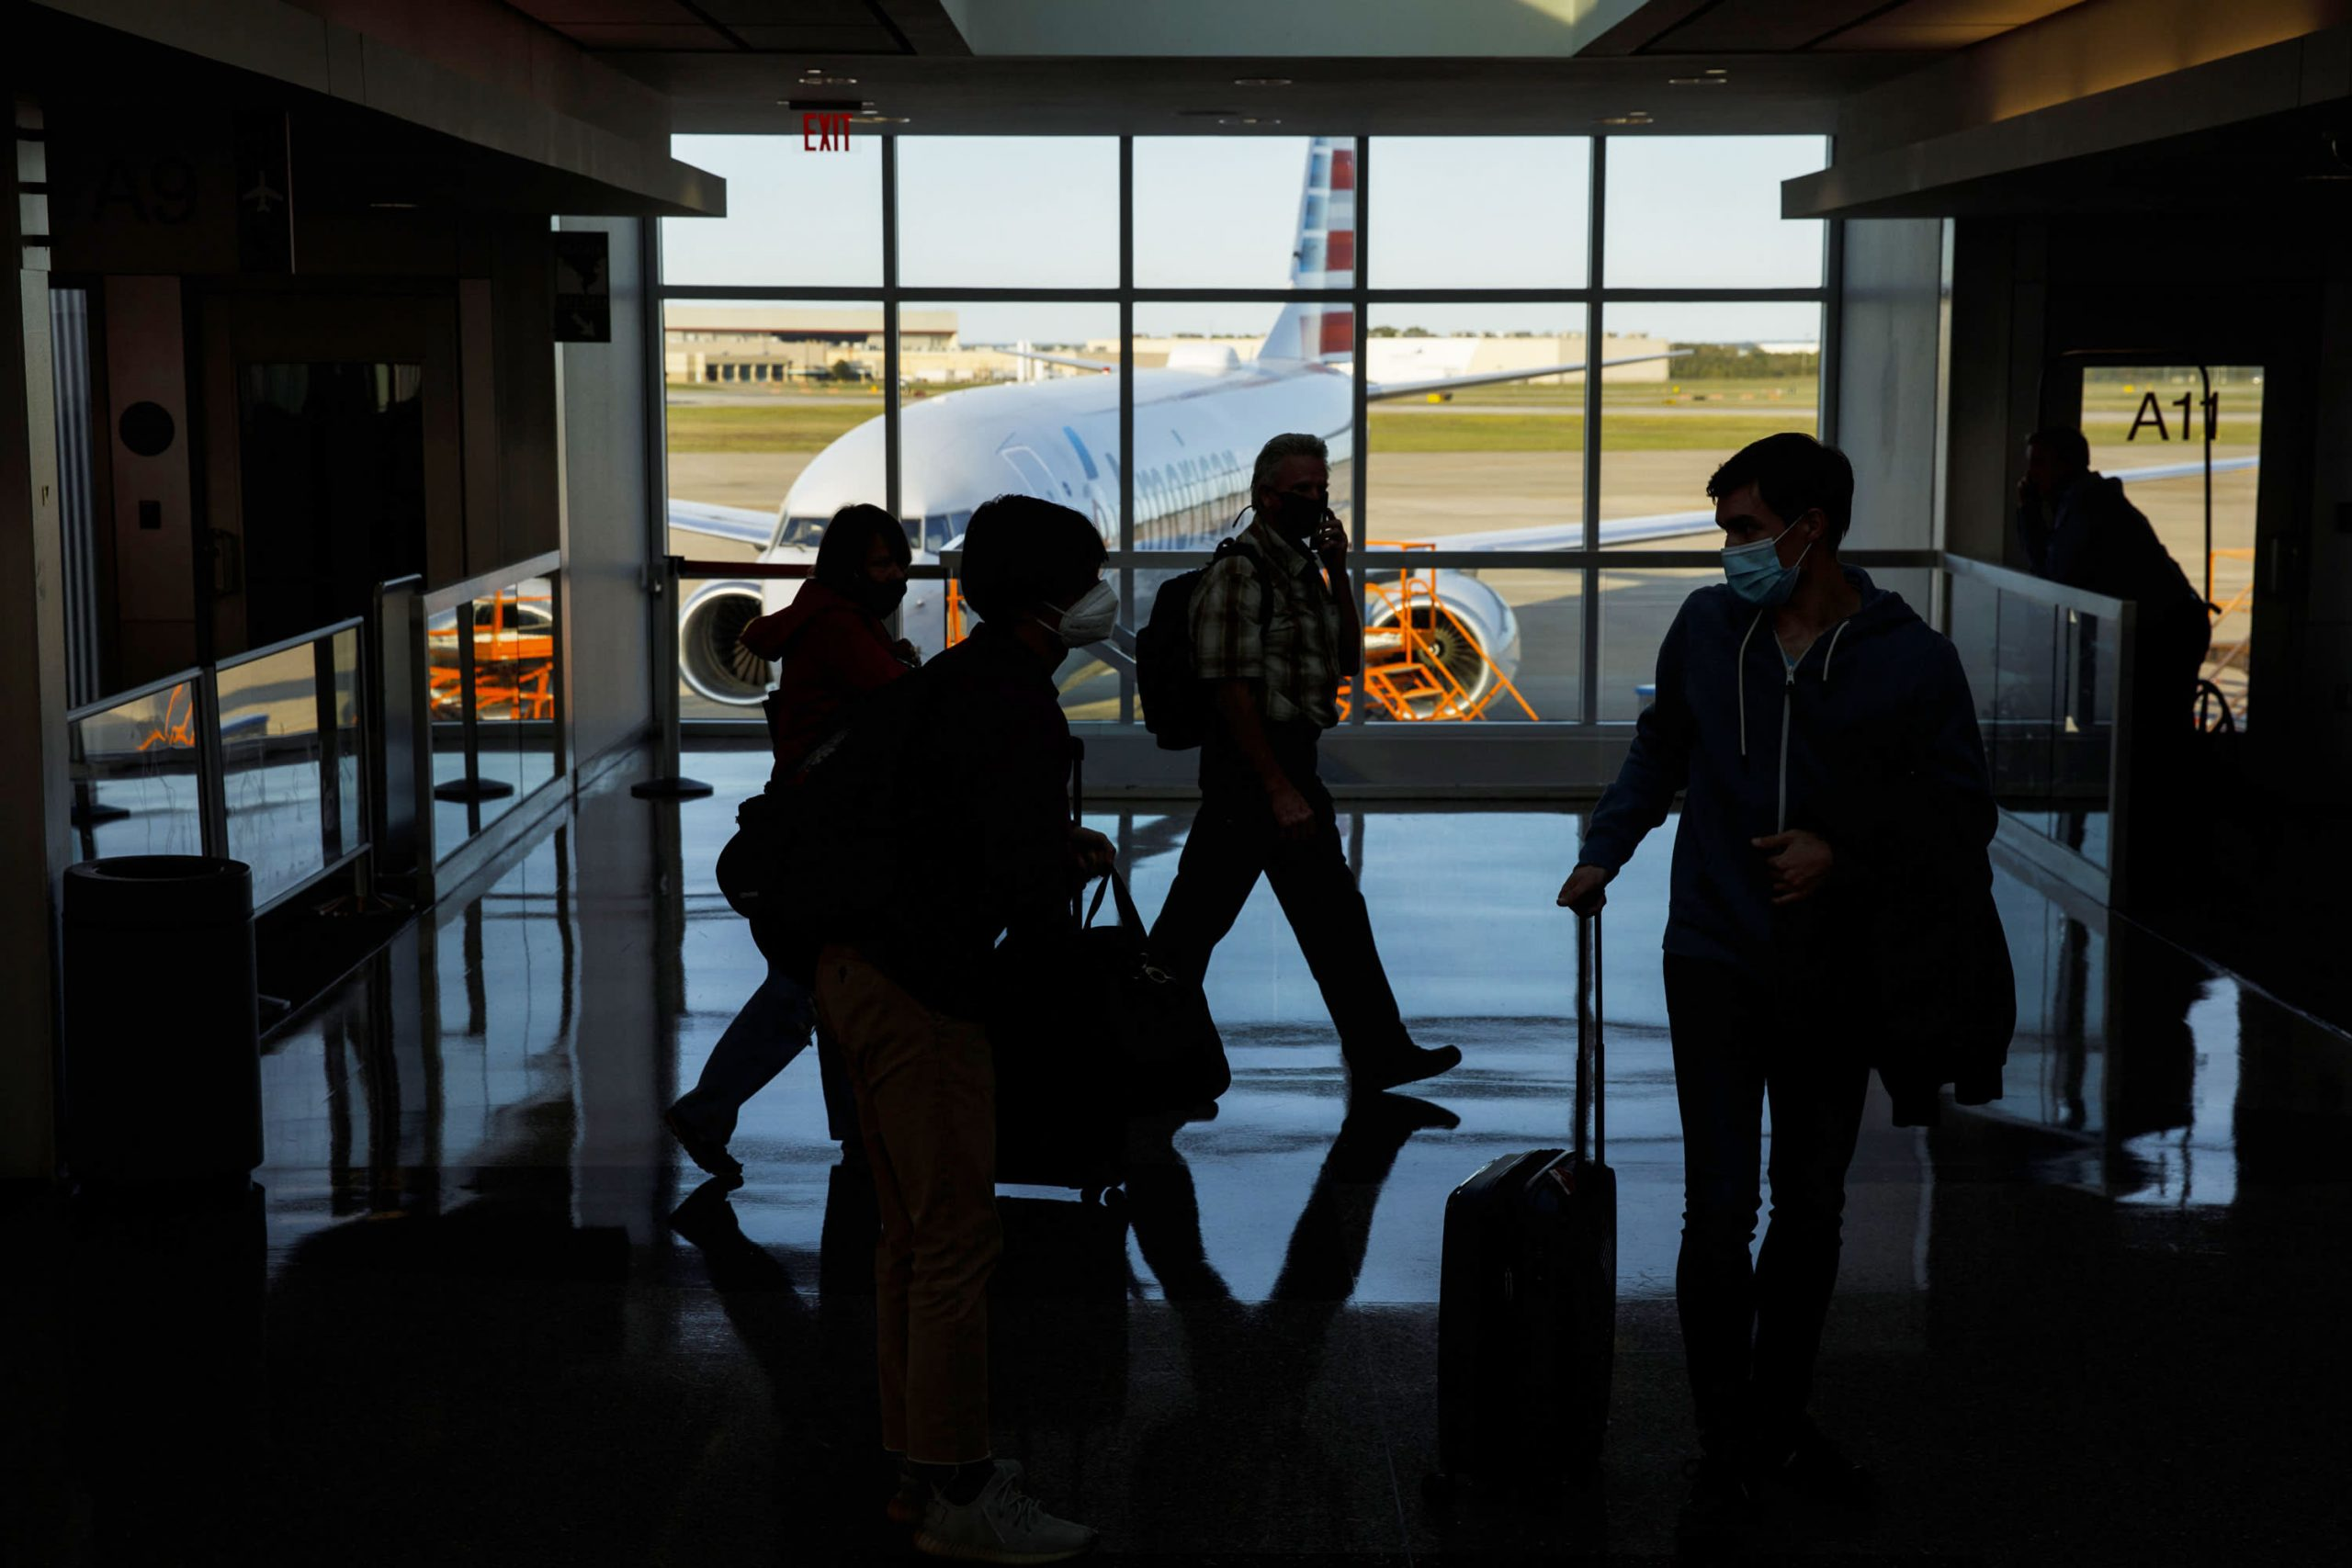 FAA chief says there's been a 'disturbing increase' in passenger disruptions on flights